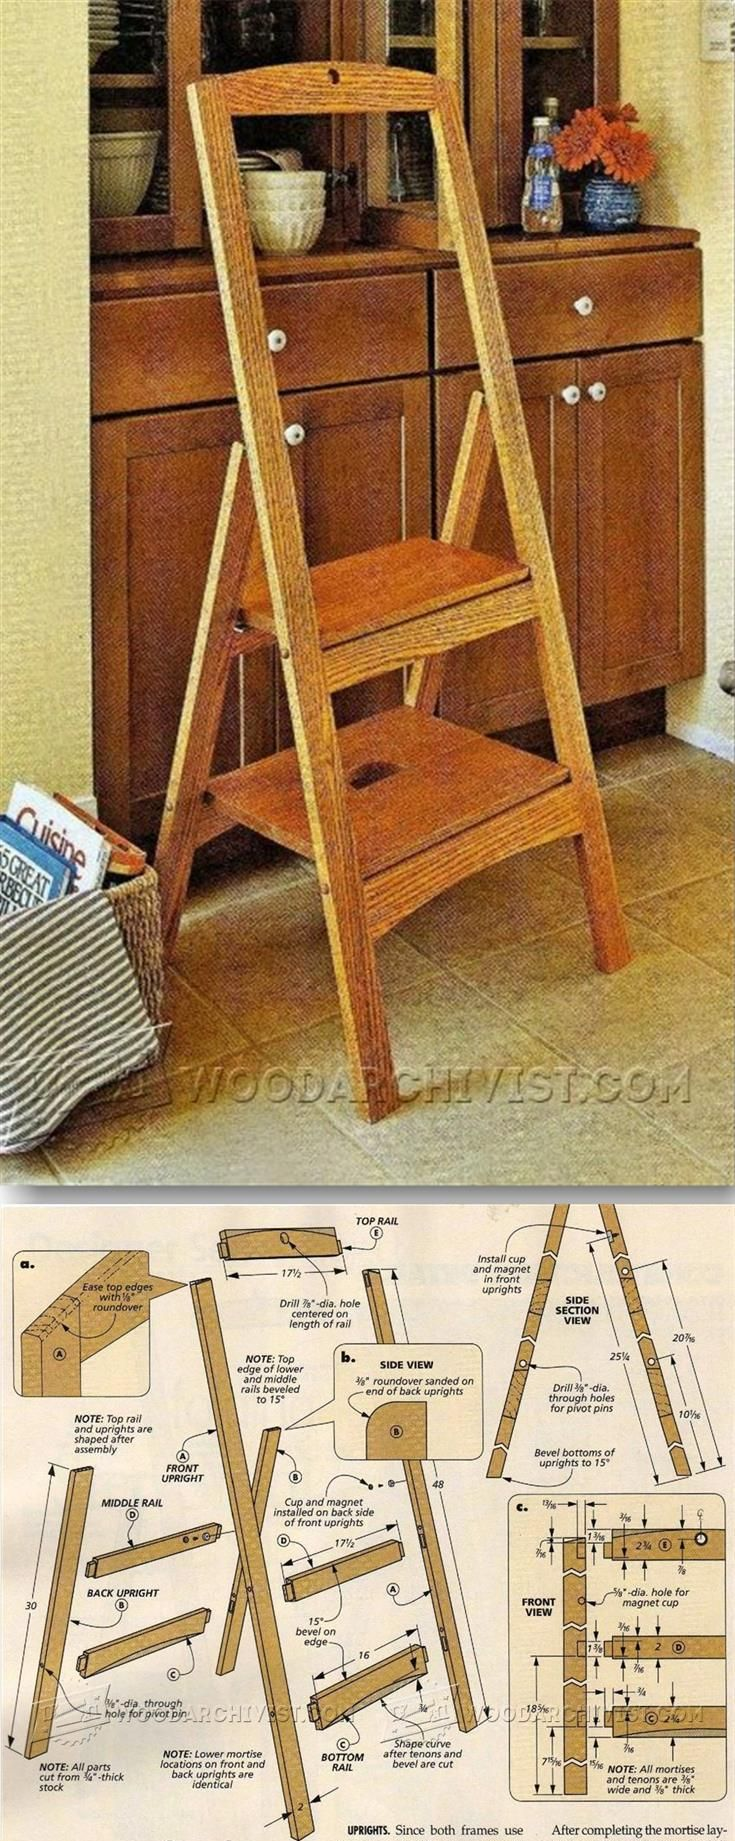 Folding Step Stool Plans - Furniture Plans and Projects | WoodArchivist.com : large folding step stool - islam-shia.org